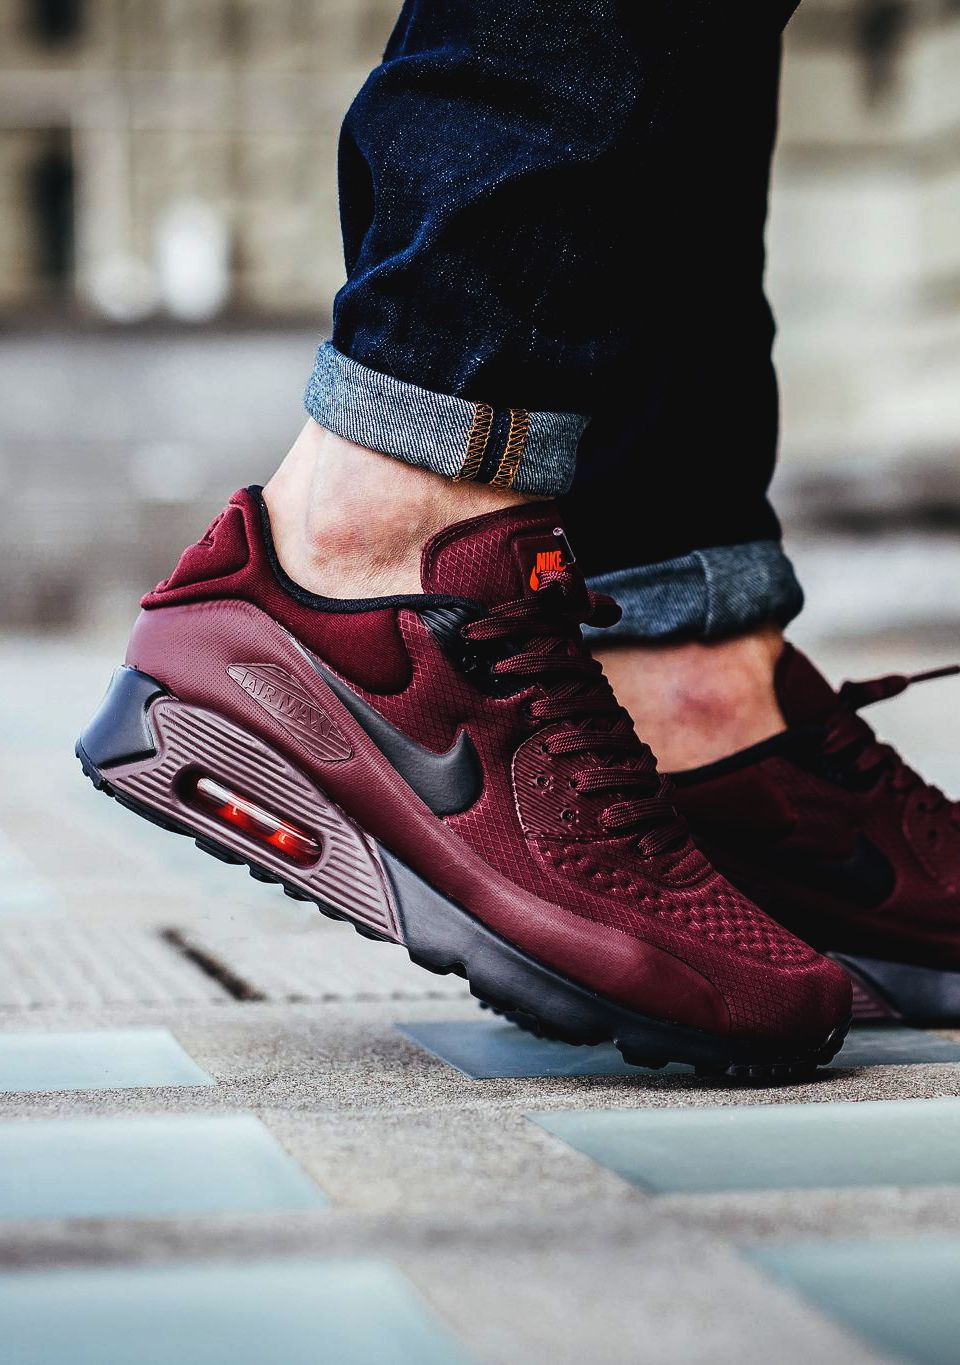 sale retailer 86815 b9e3f shoes ,sneaker, sneakers, kicks, sole, nike, air max ,air max 90 ,am90, red  ,swoosh ,fashion ,style ,streetwear ,sporty ,sportswear ,menswear ,men  fashion ...